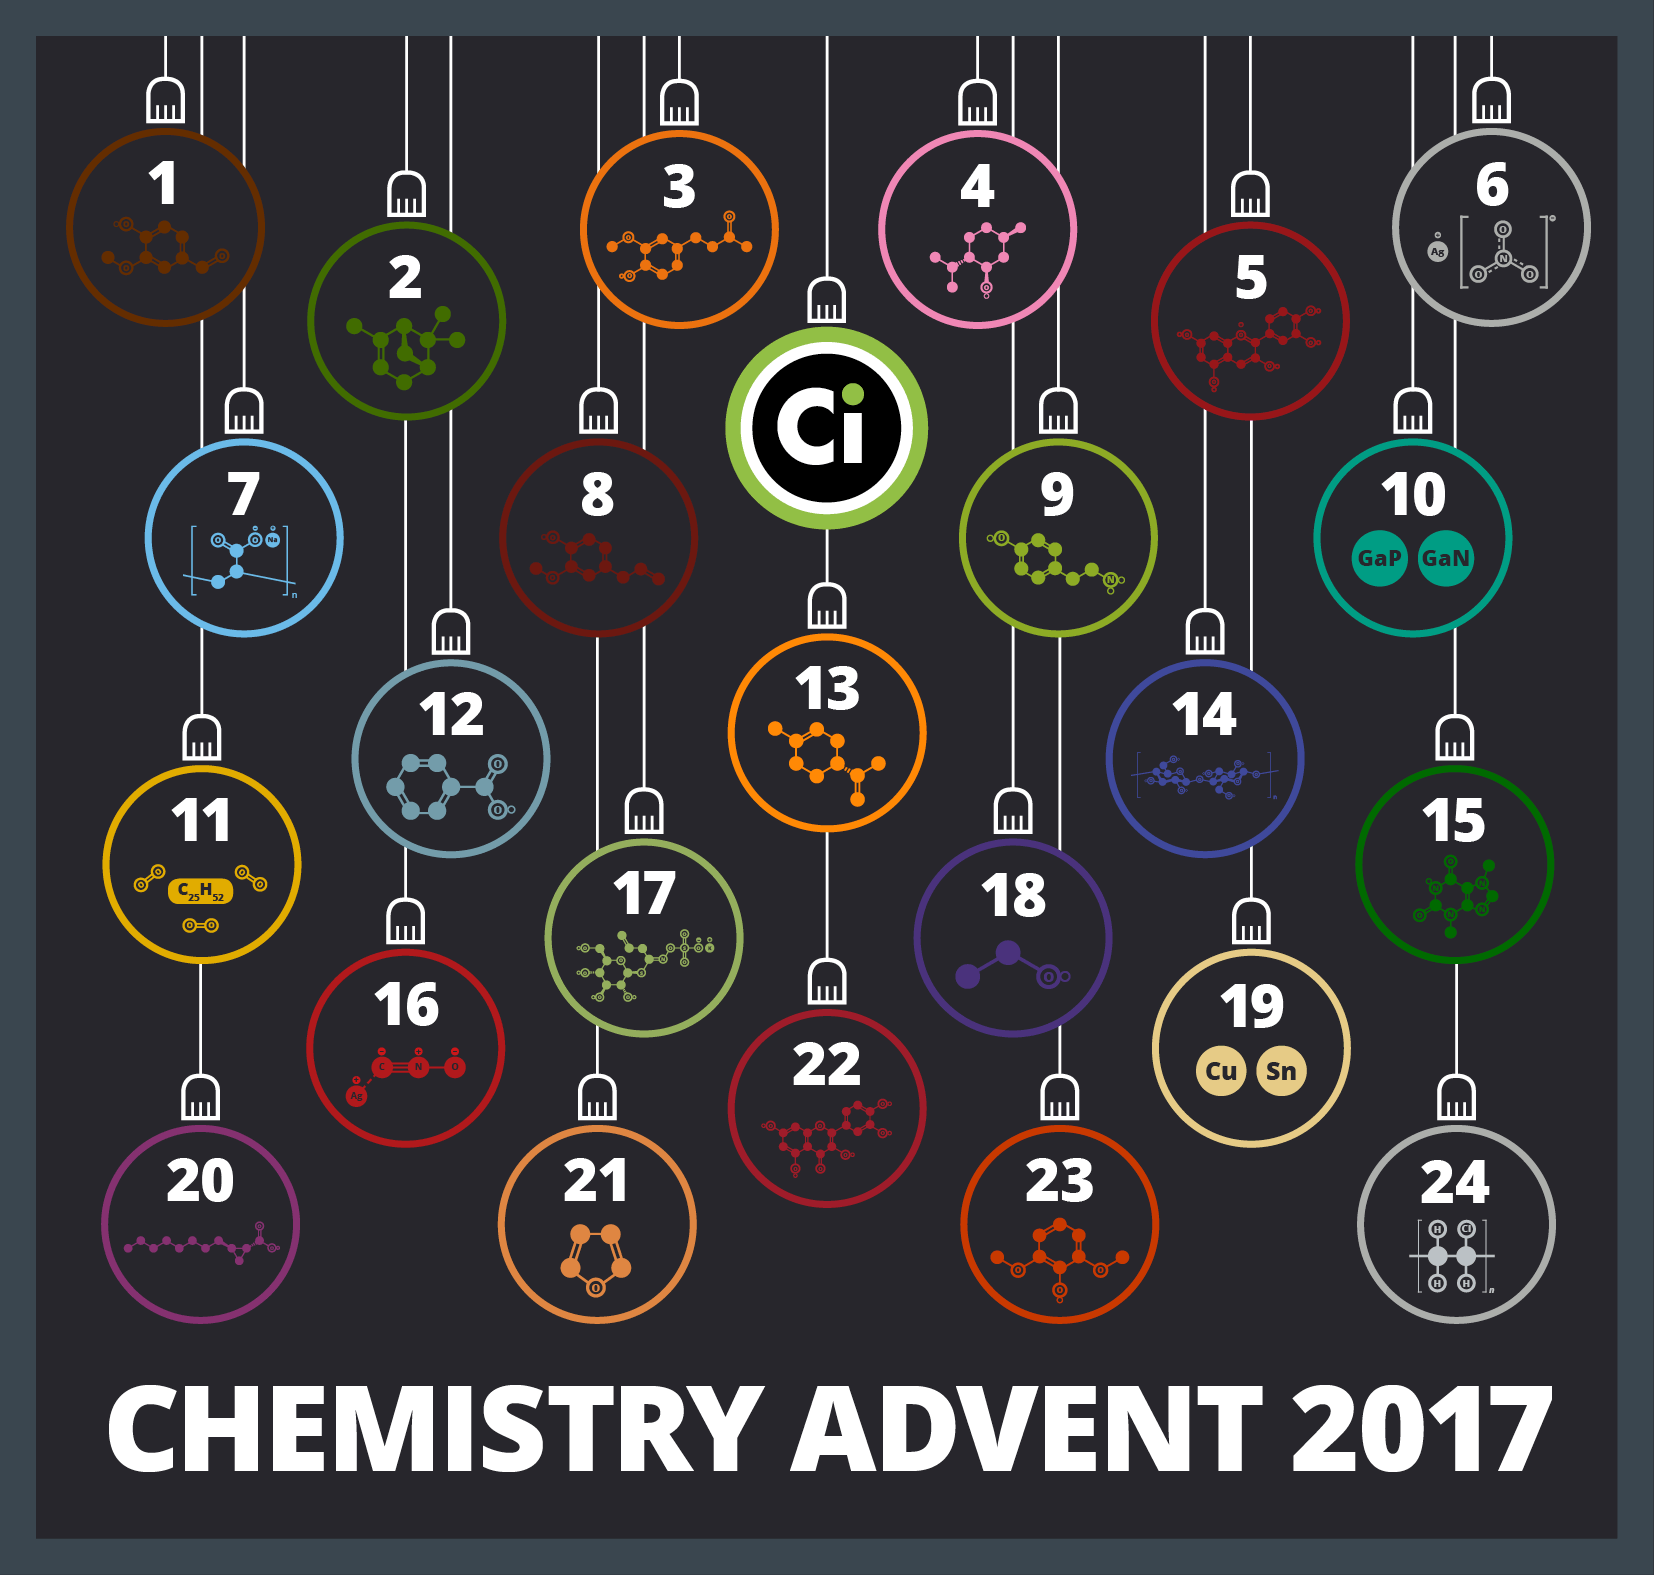 Compound Interest - The Chemistry Advent Calendar 2017